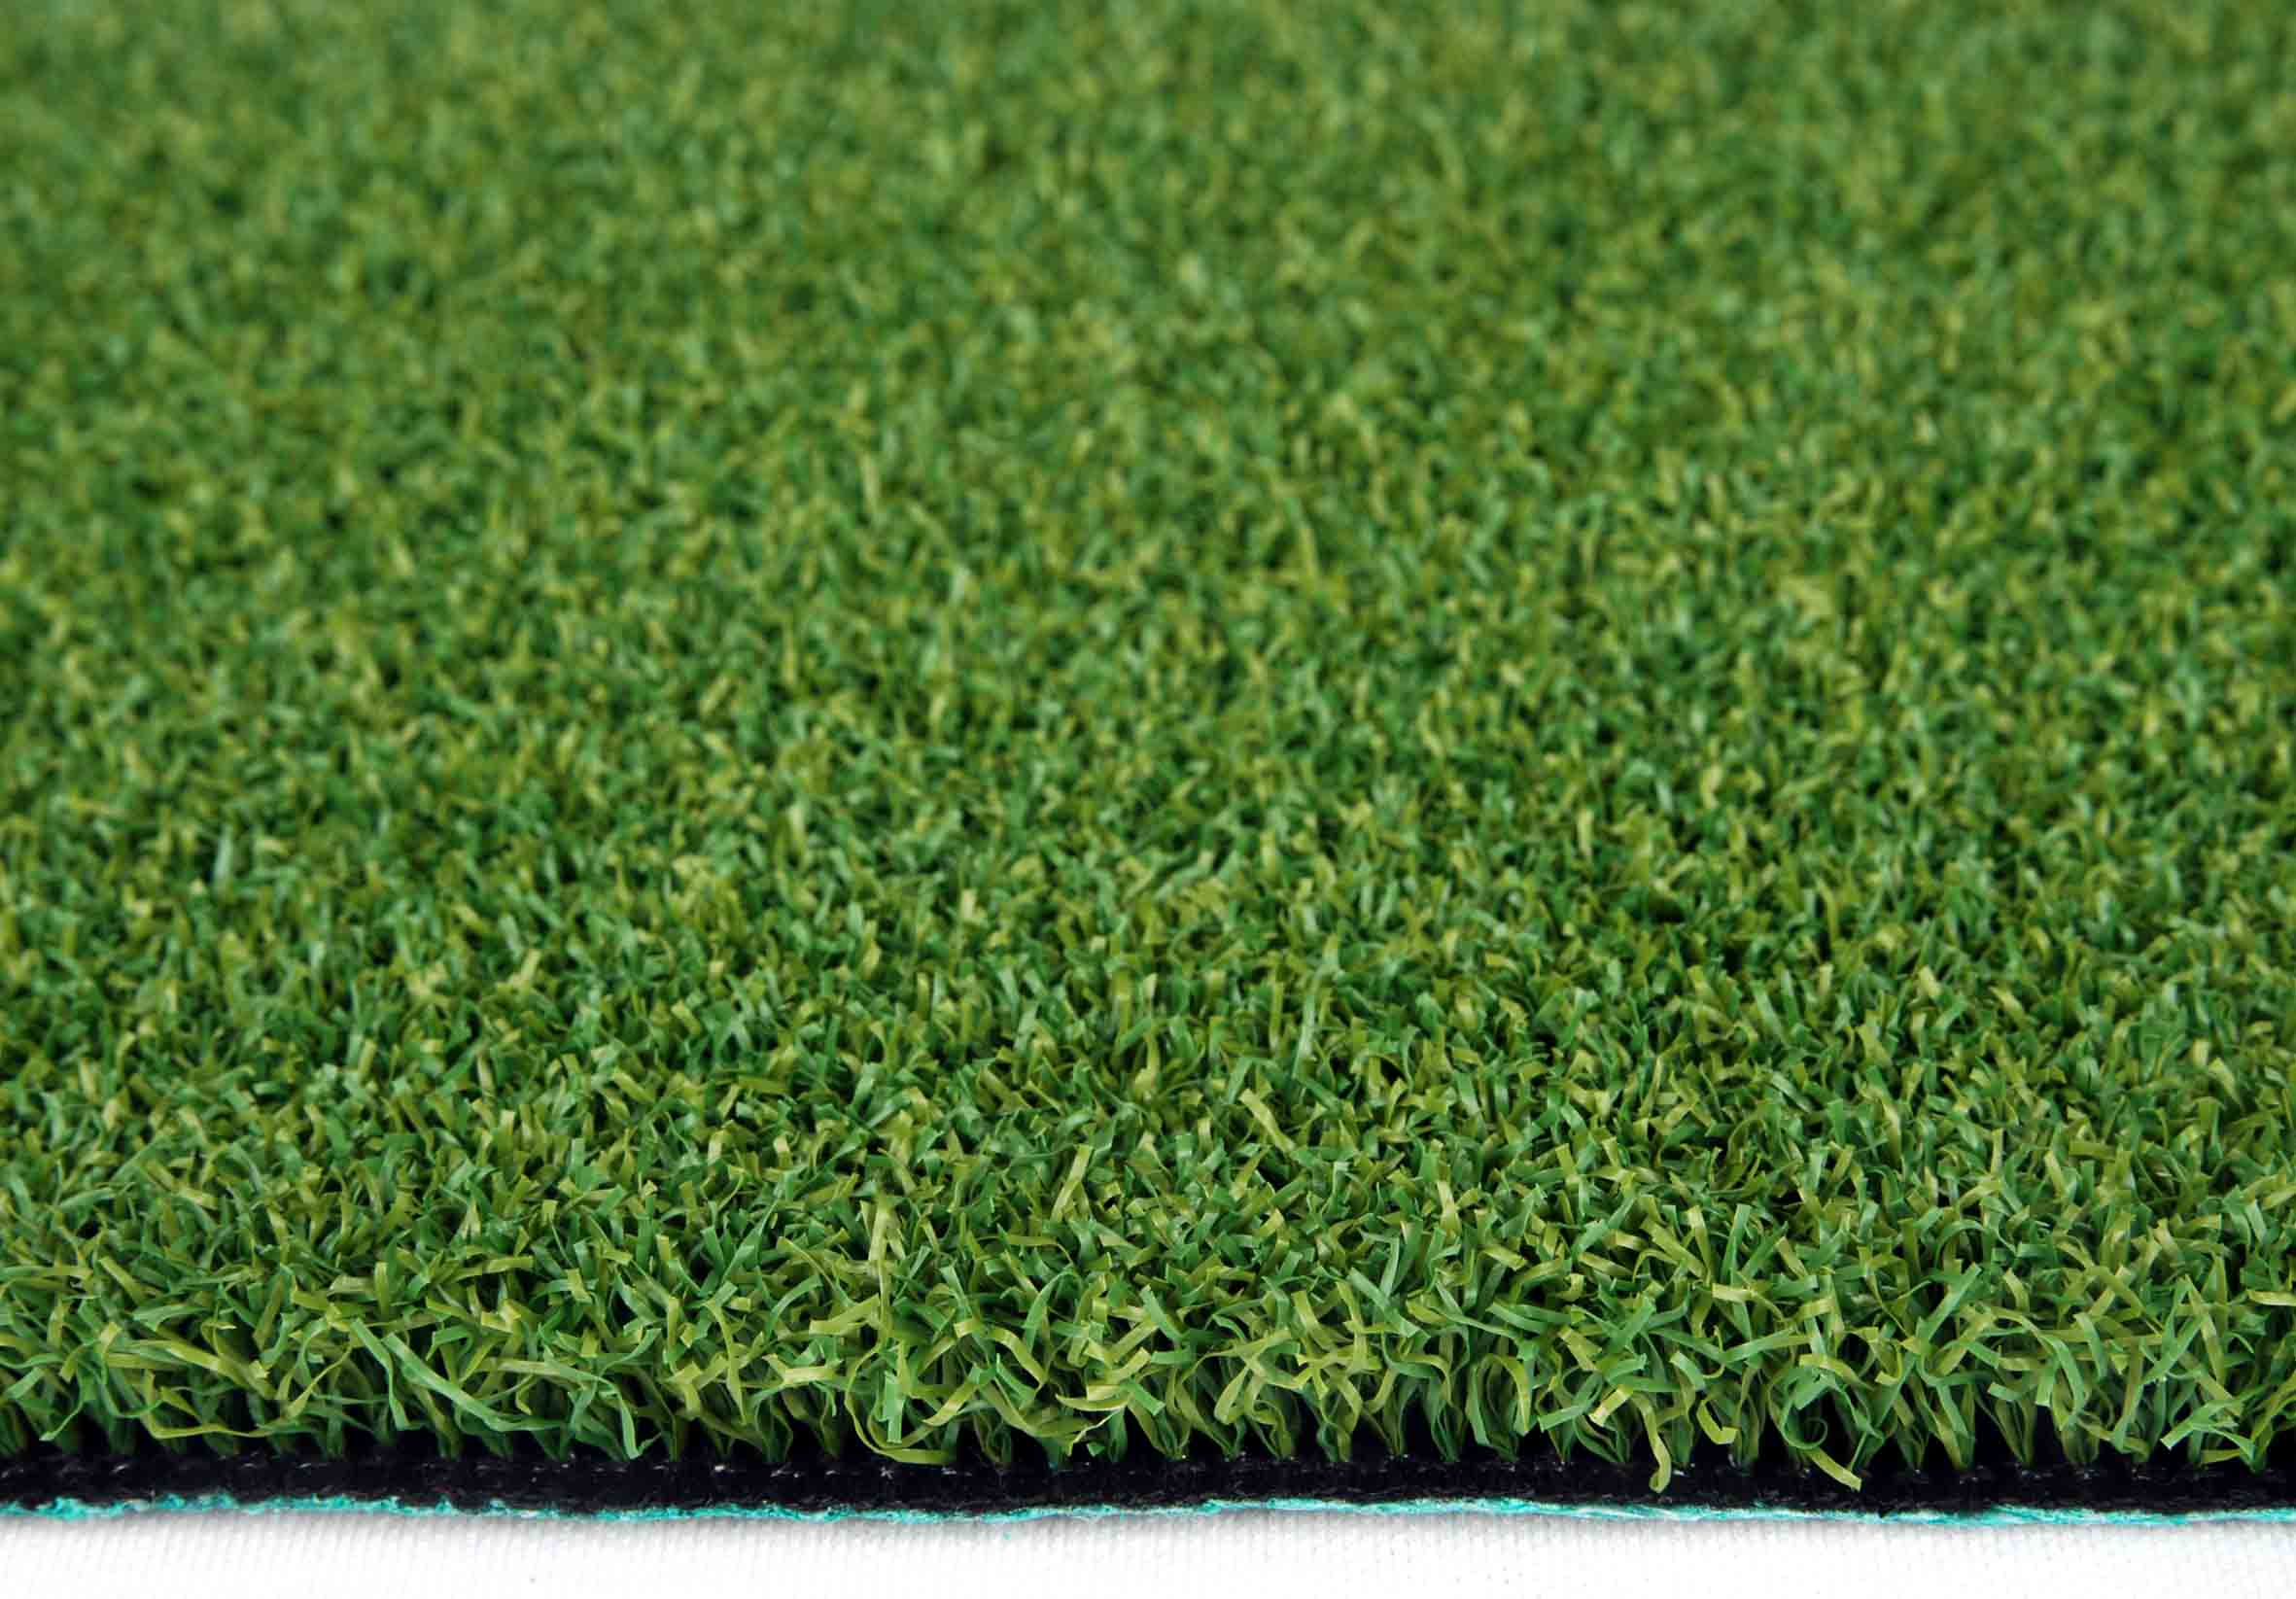 Winter Lawn Care Natural Or Artificial Turf Ivinghoe Turf News